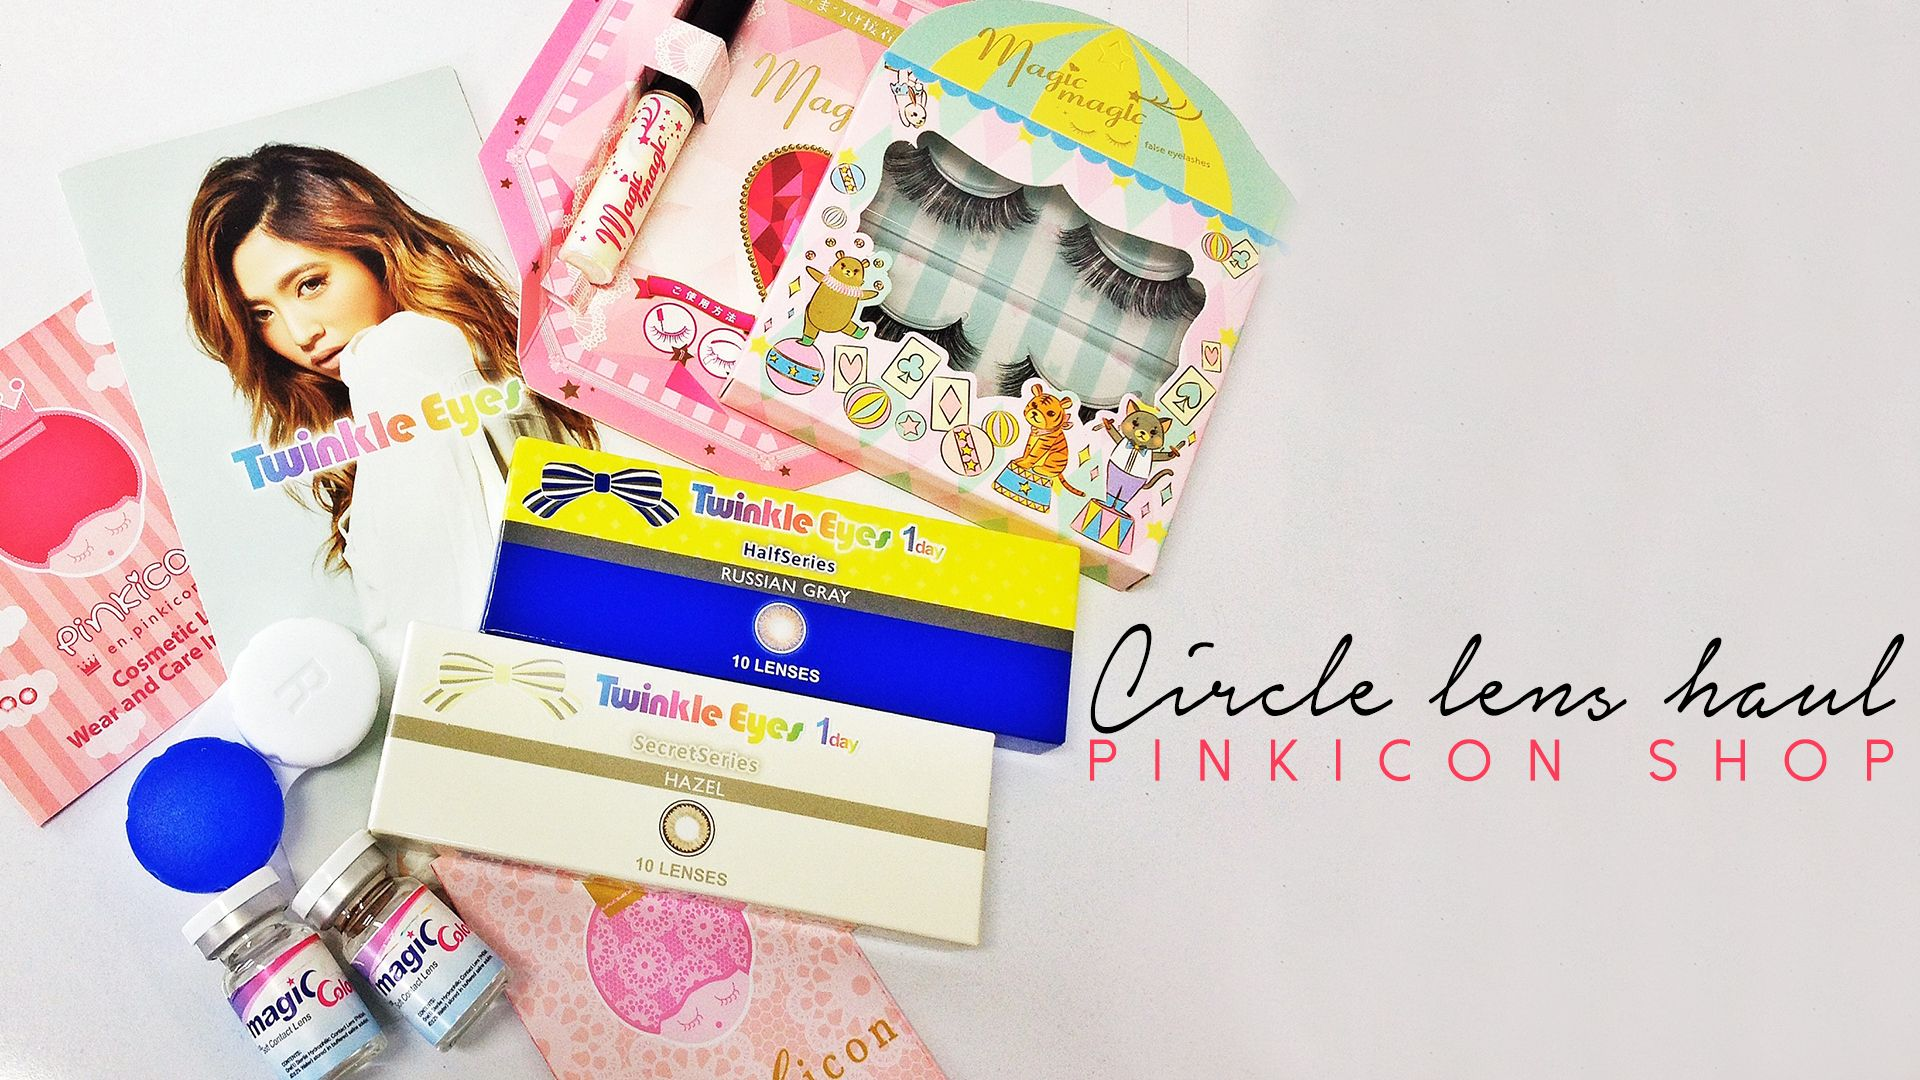 CIRCLE LENS REVIEW | PINKICON TWINKLES EYES GEO